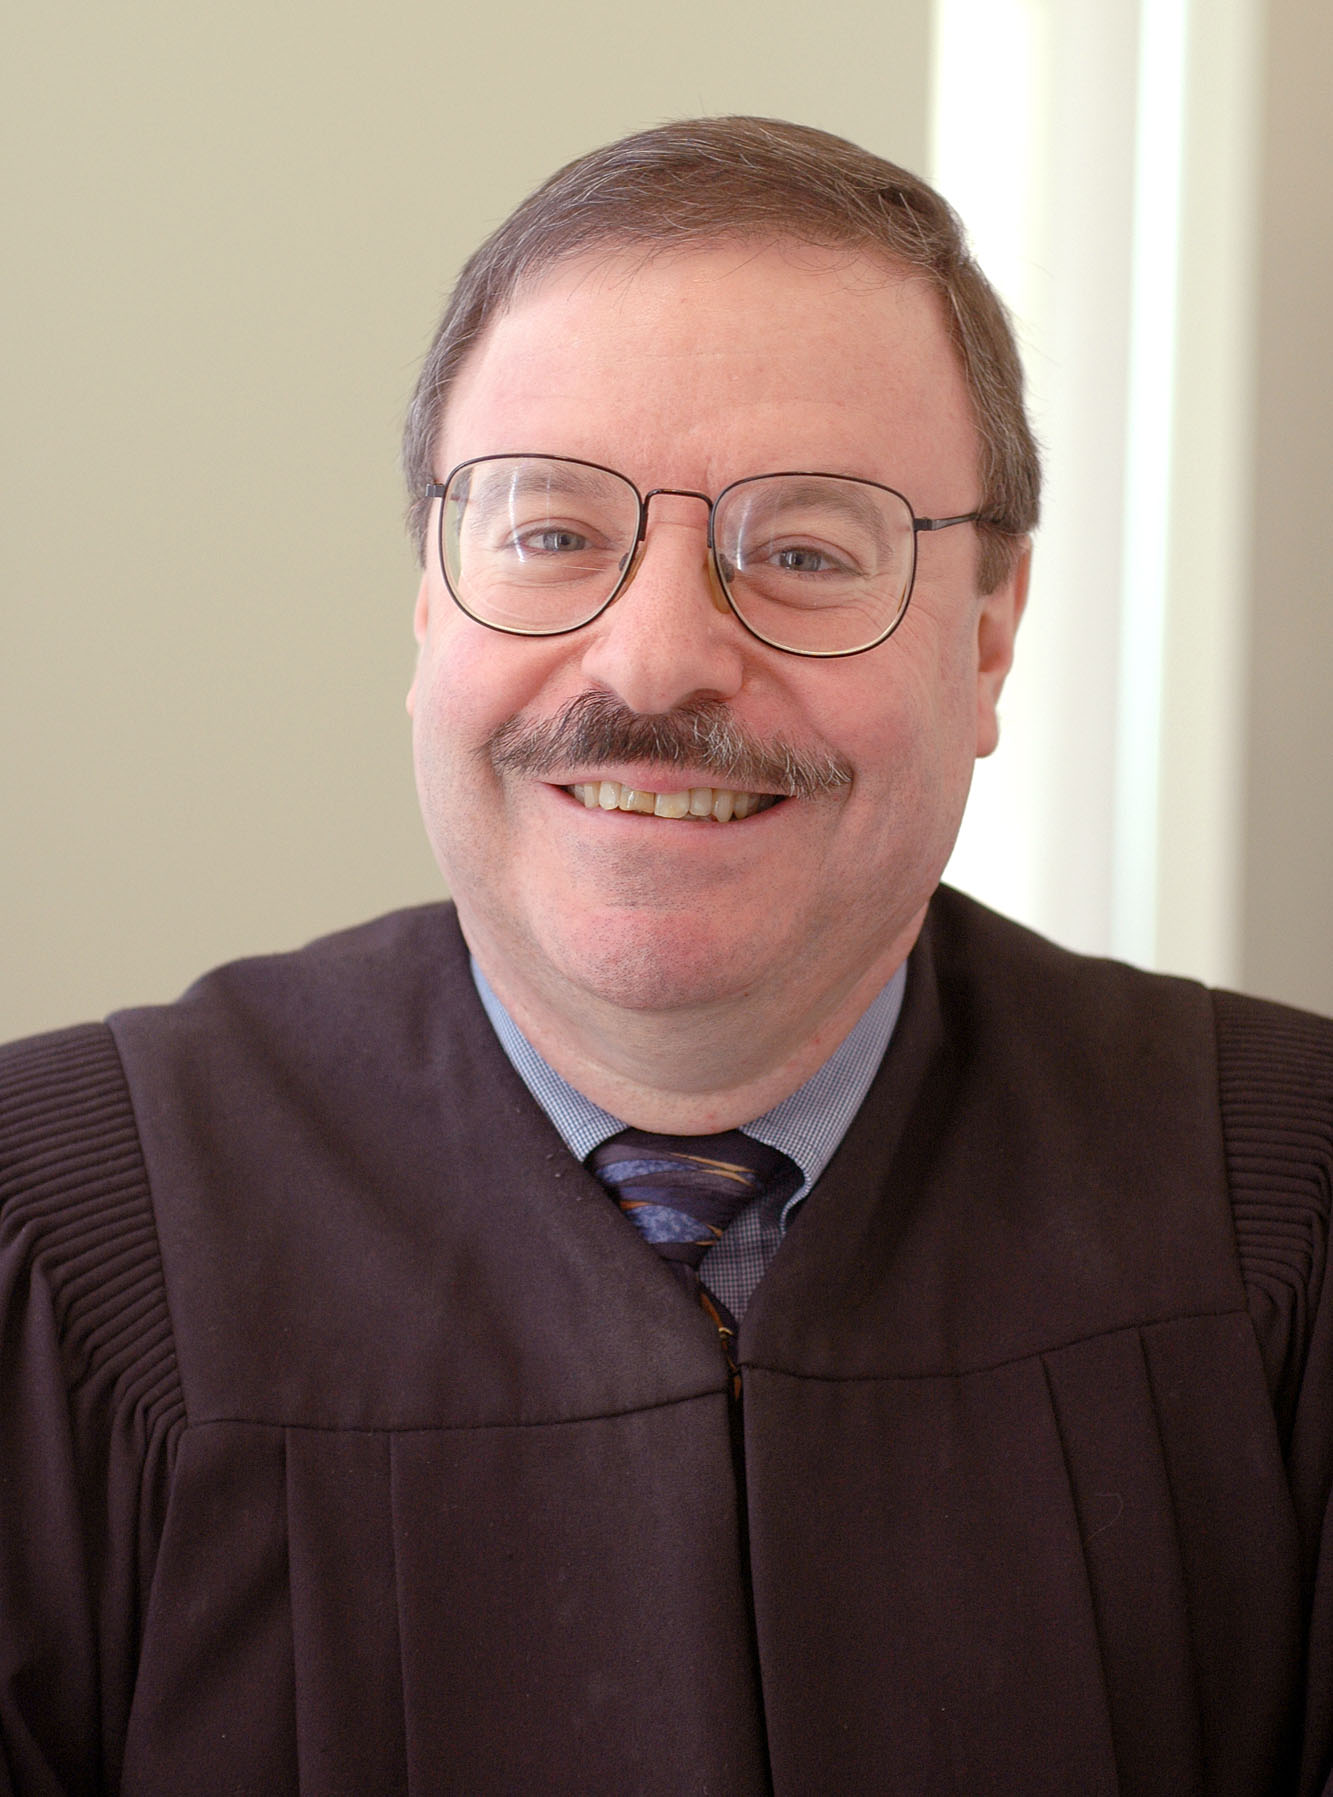 Andrew J. Peck - Chief Magistrate Judge, U.S. District Court for the Southern District of New York  030806